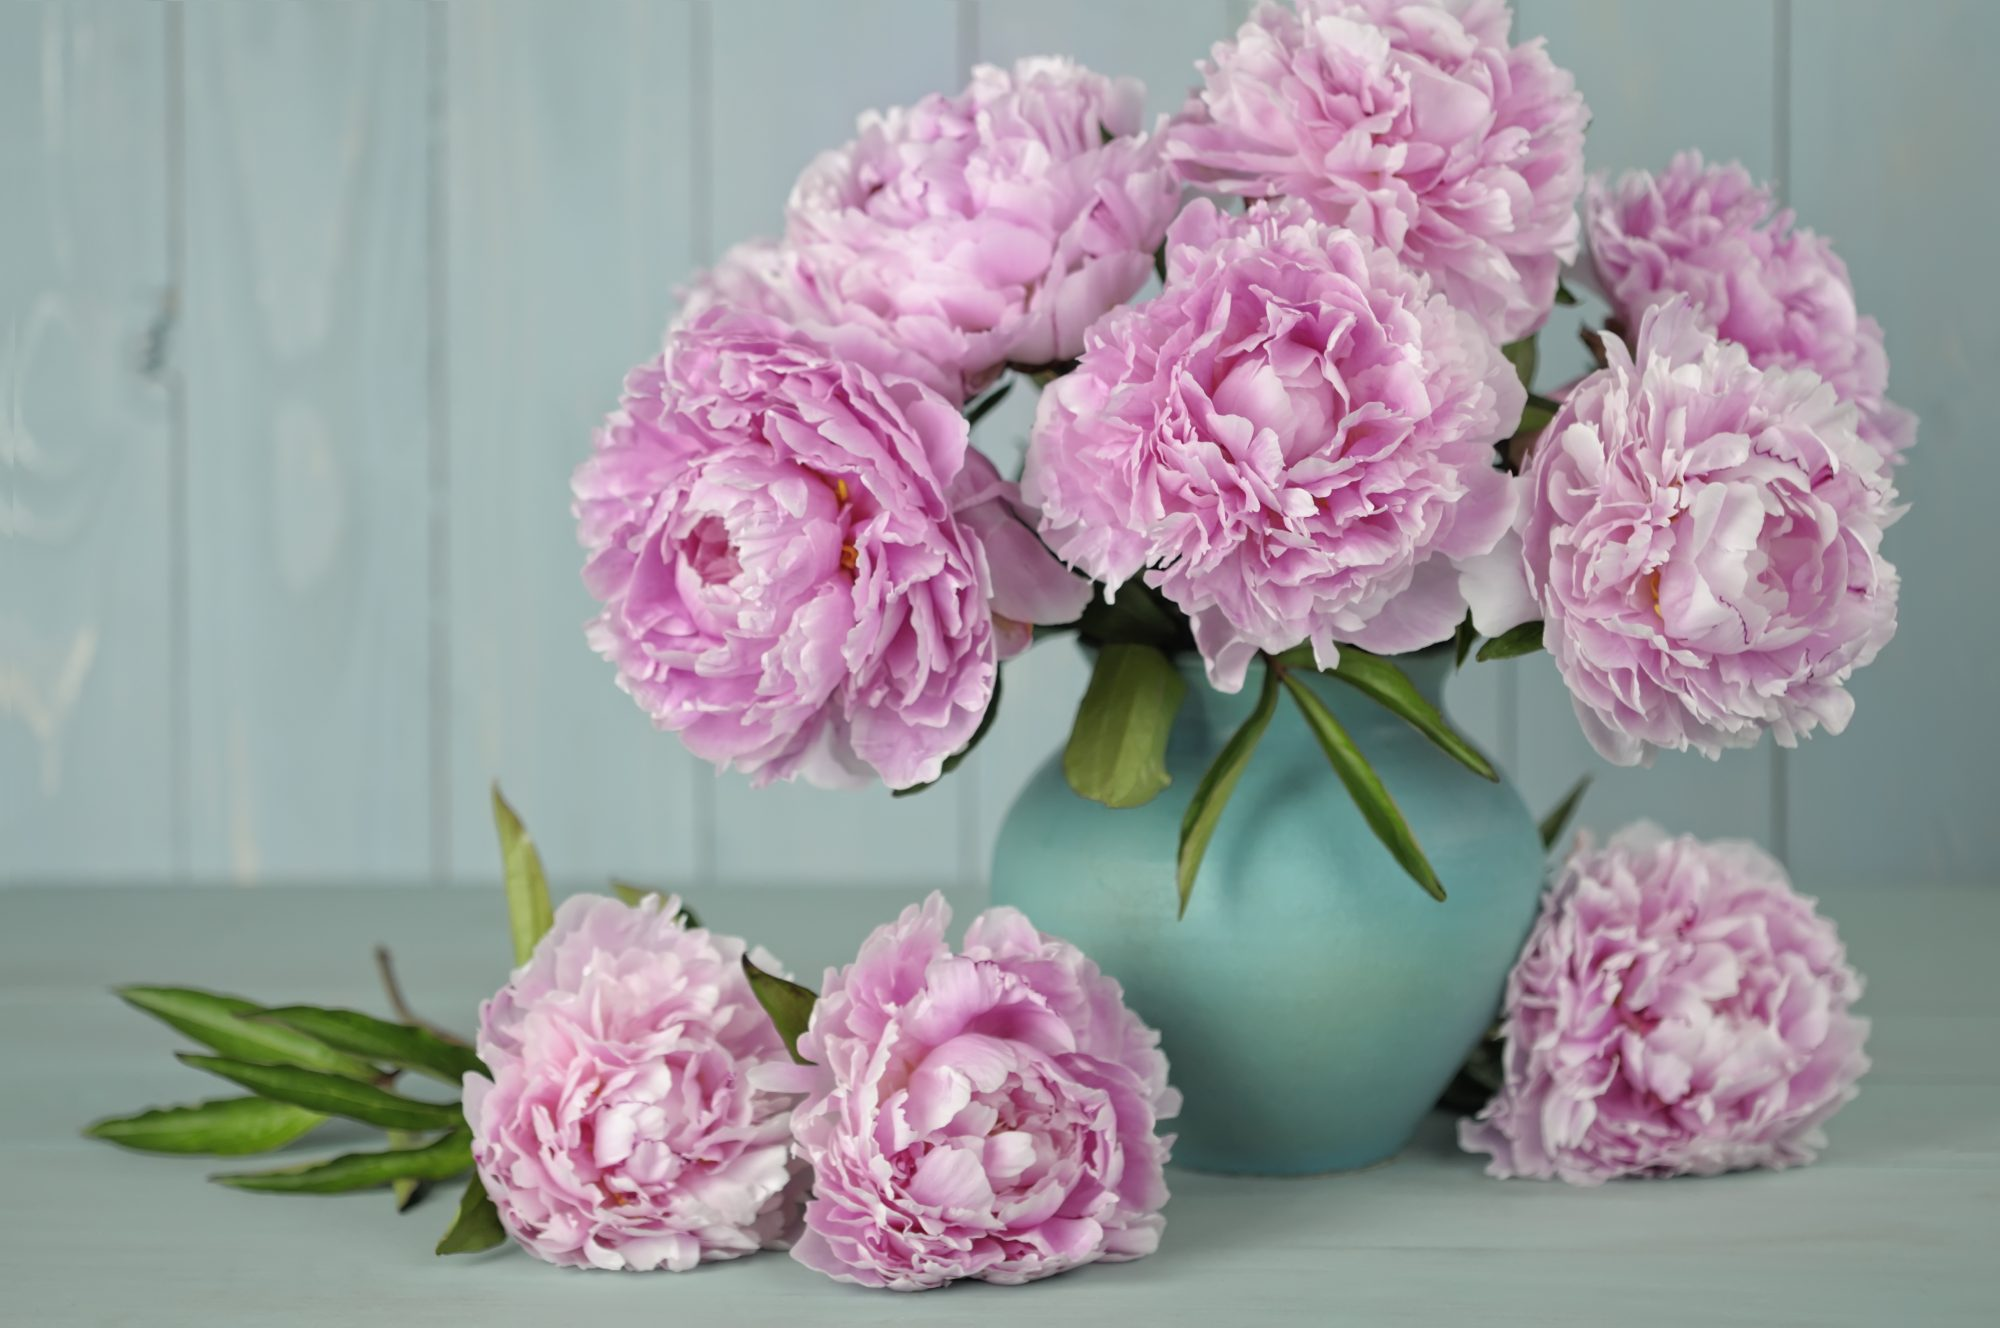 A Peony for Life? A Dream Come True